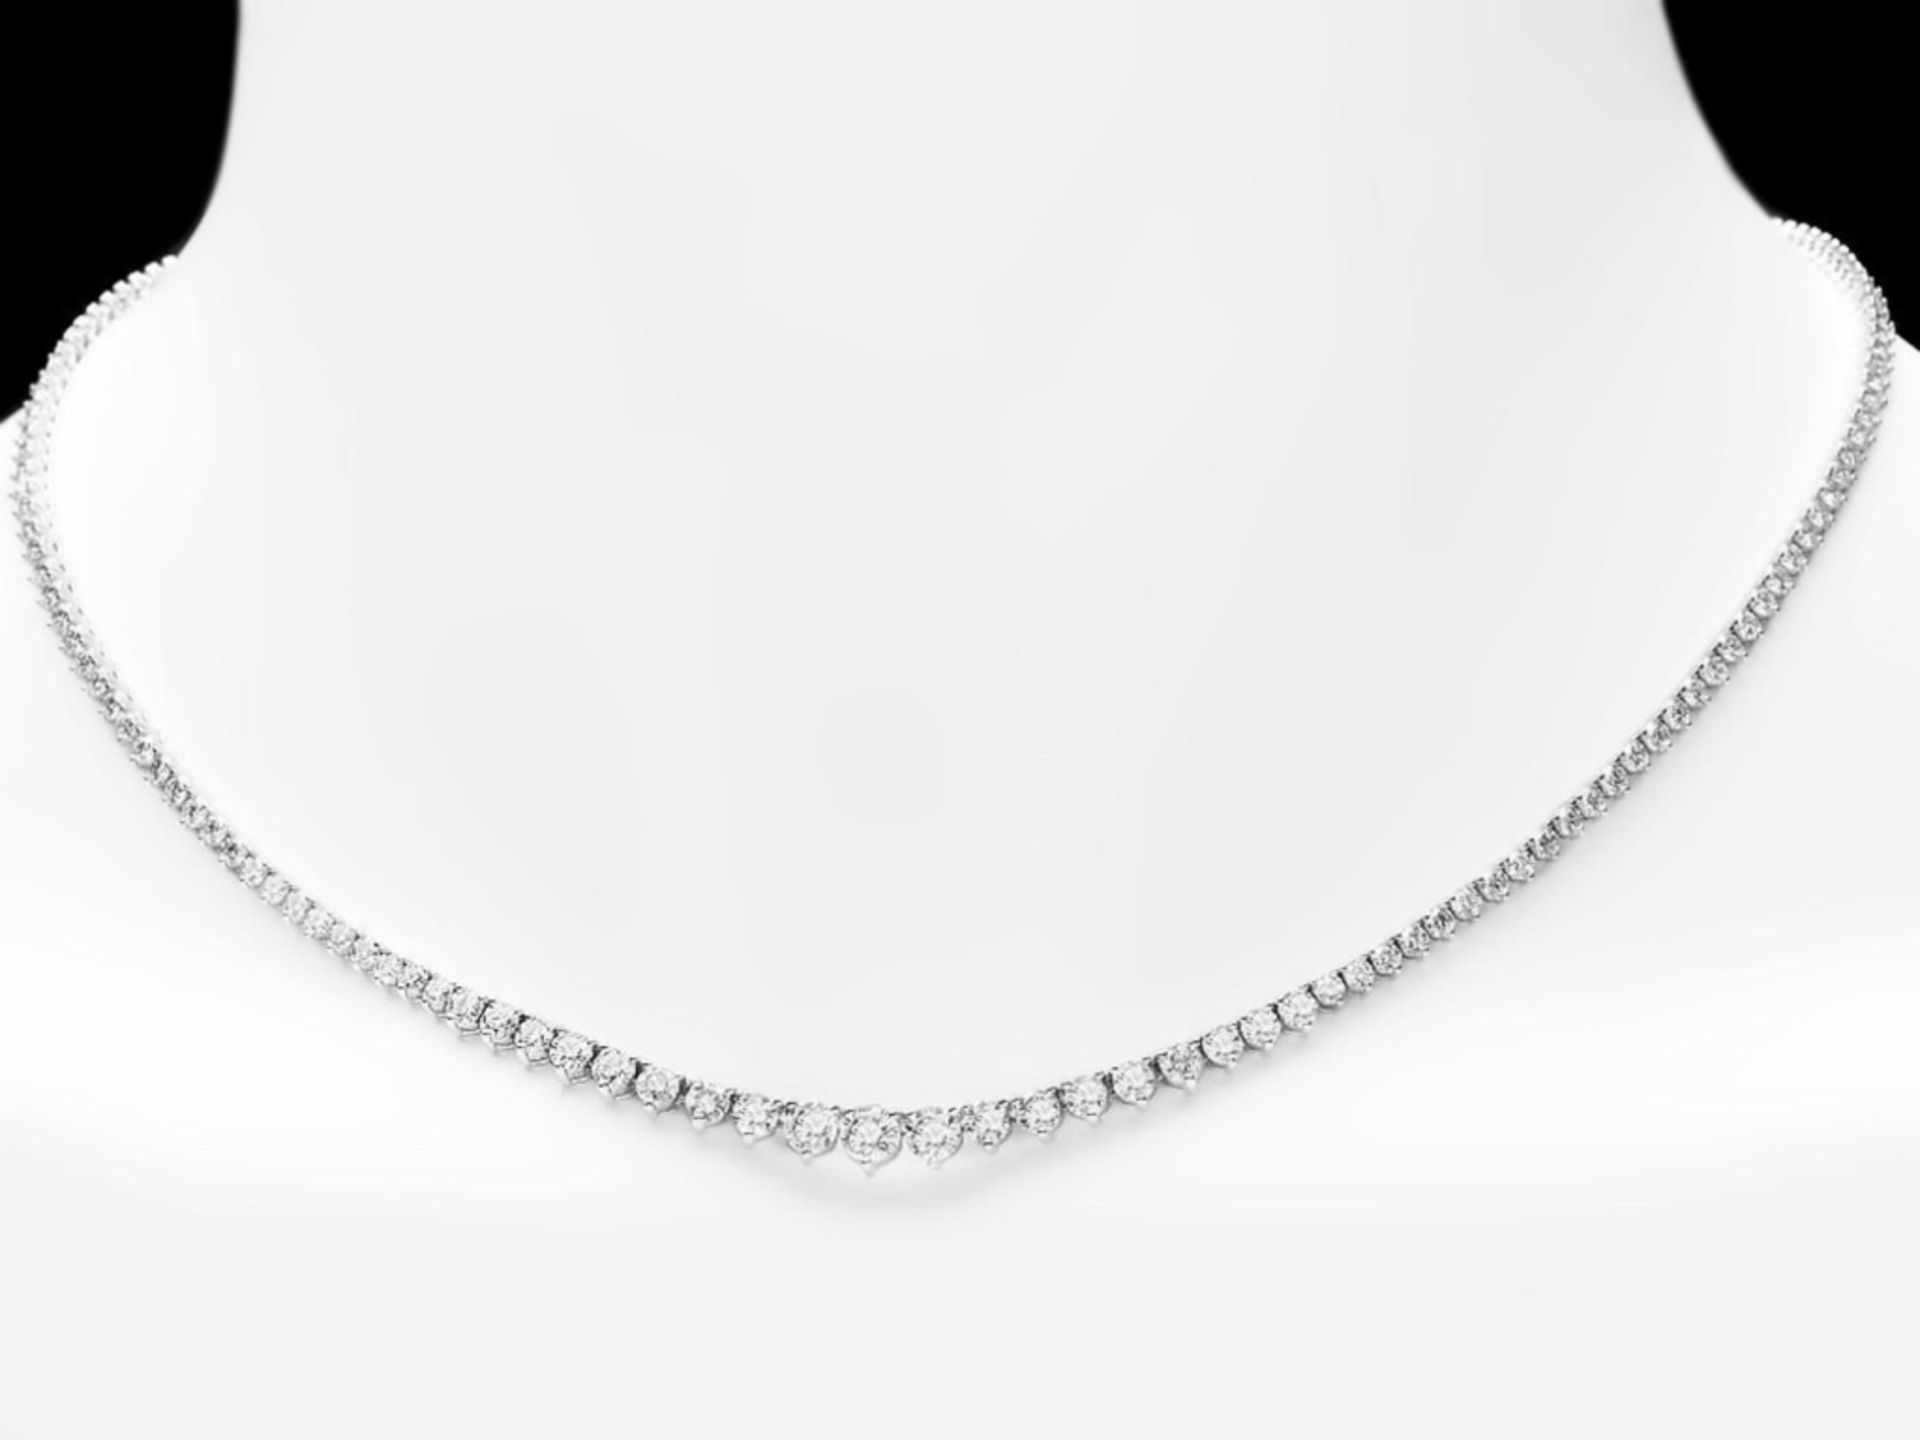 18k White Gold 7.80ct Diamond Necklace - Image 3 of 4